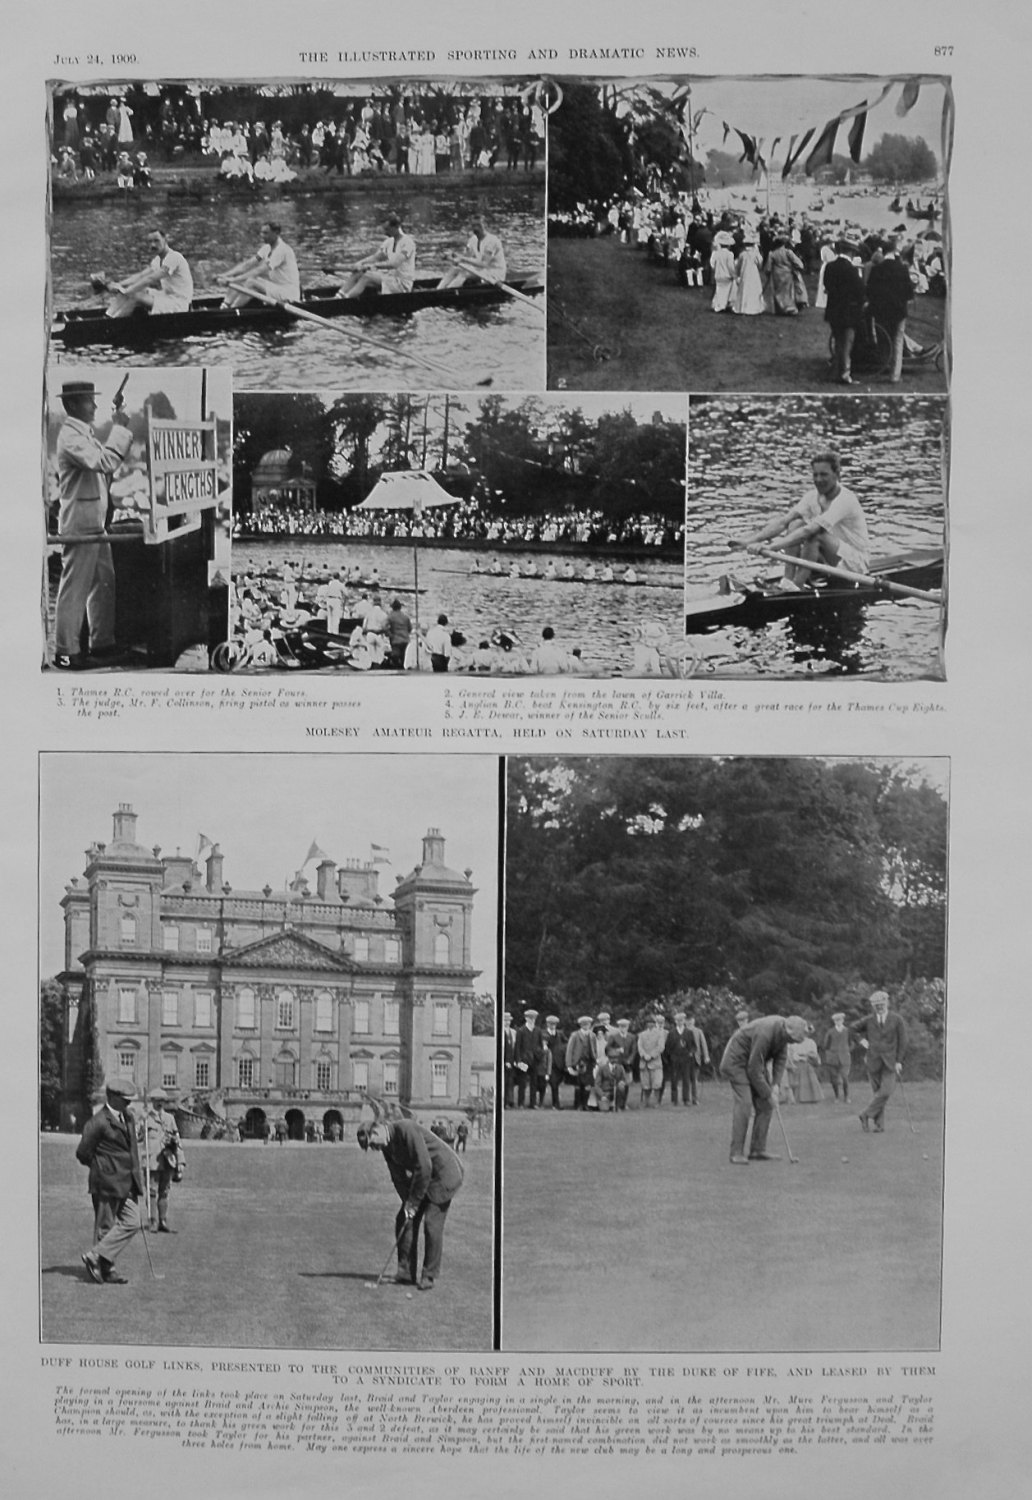 Duff House Golf Links, Presented to the Communities of Banff and Macduff by